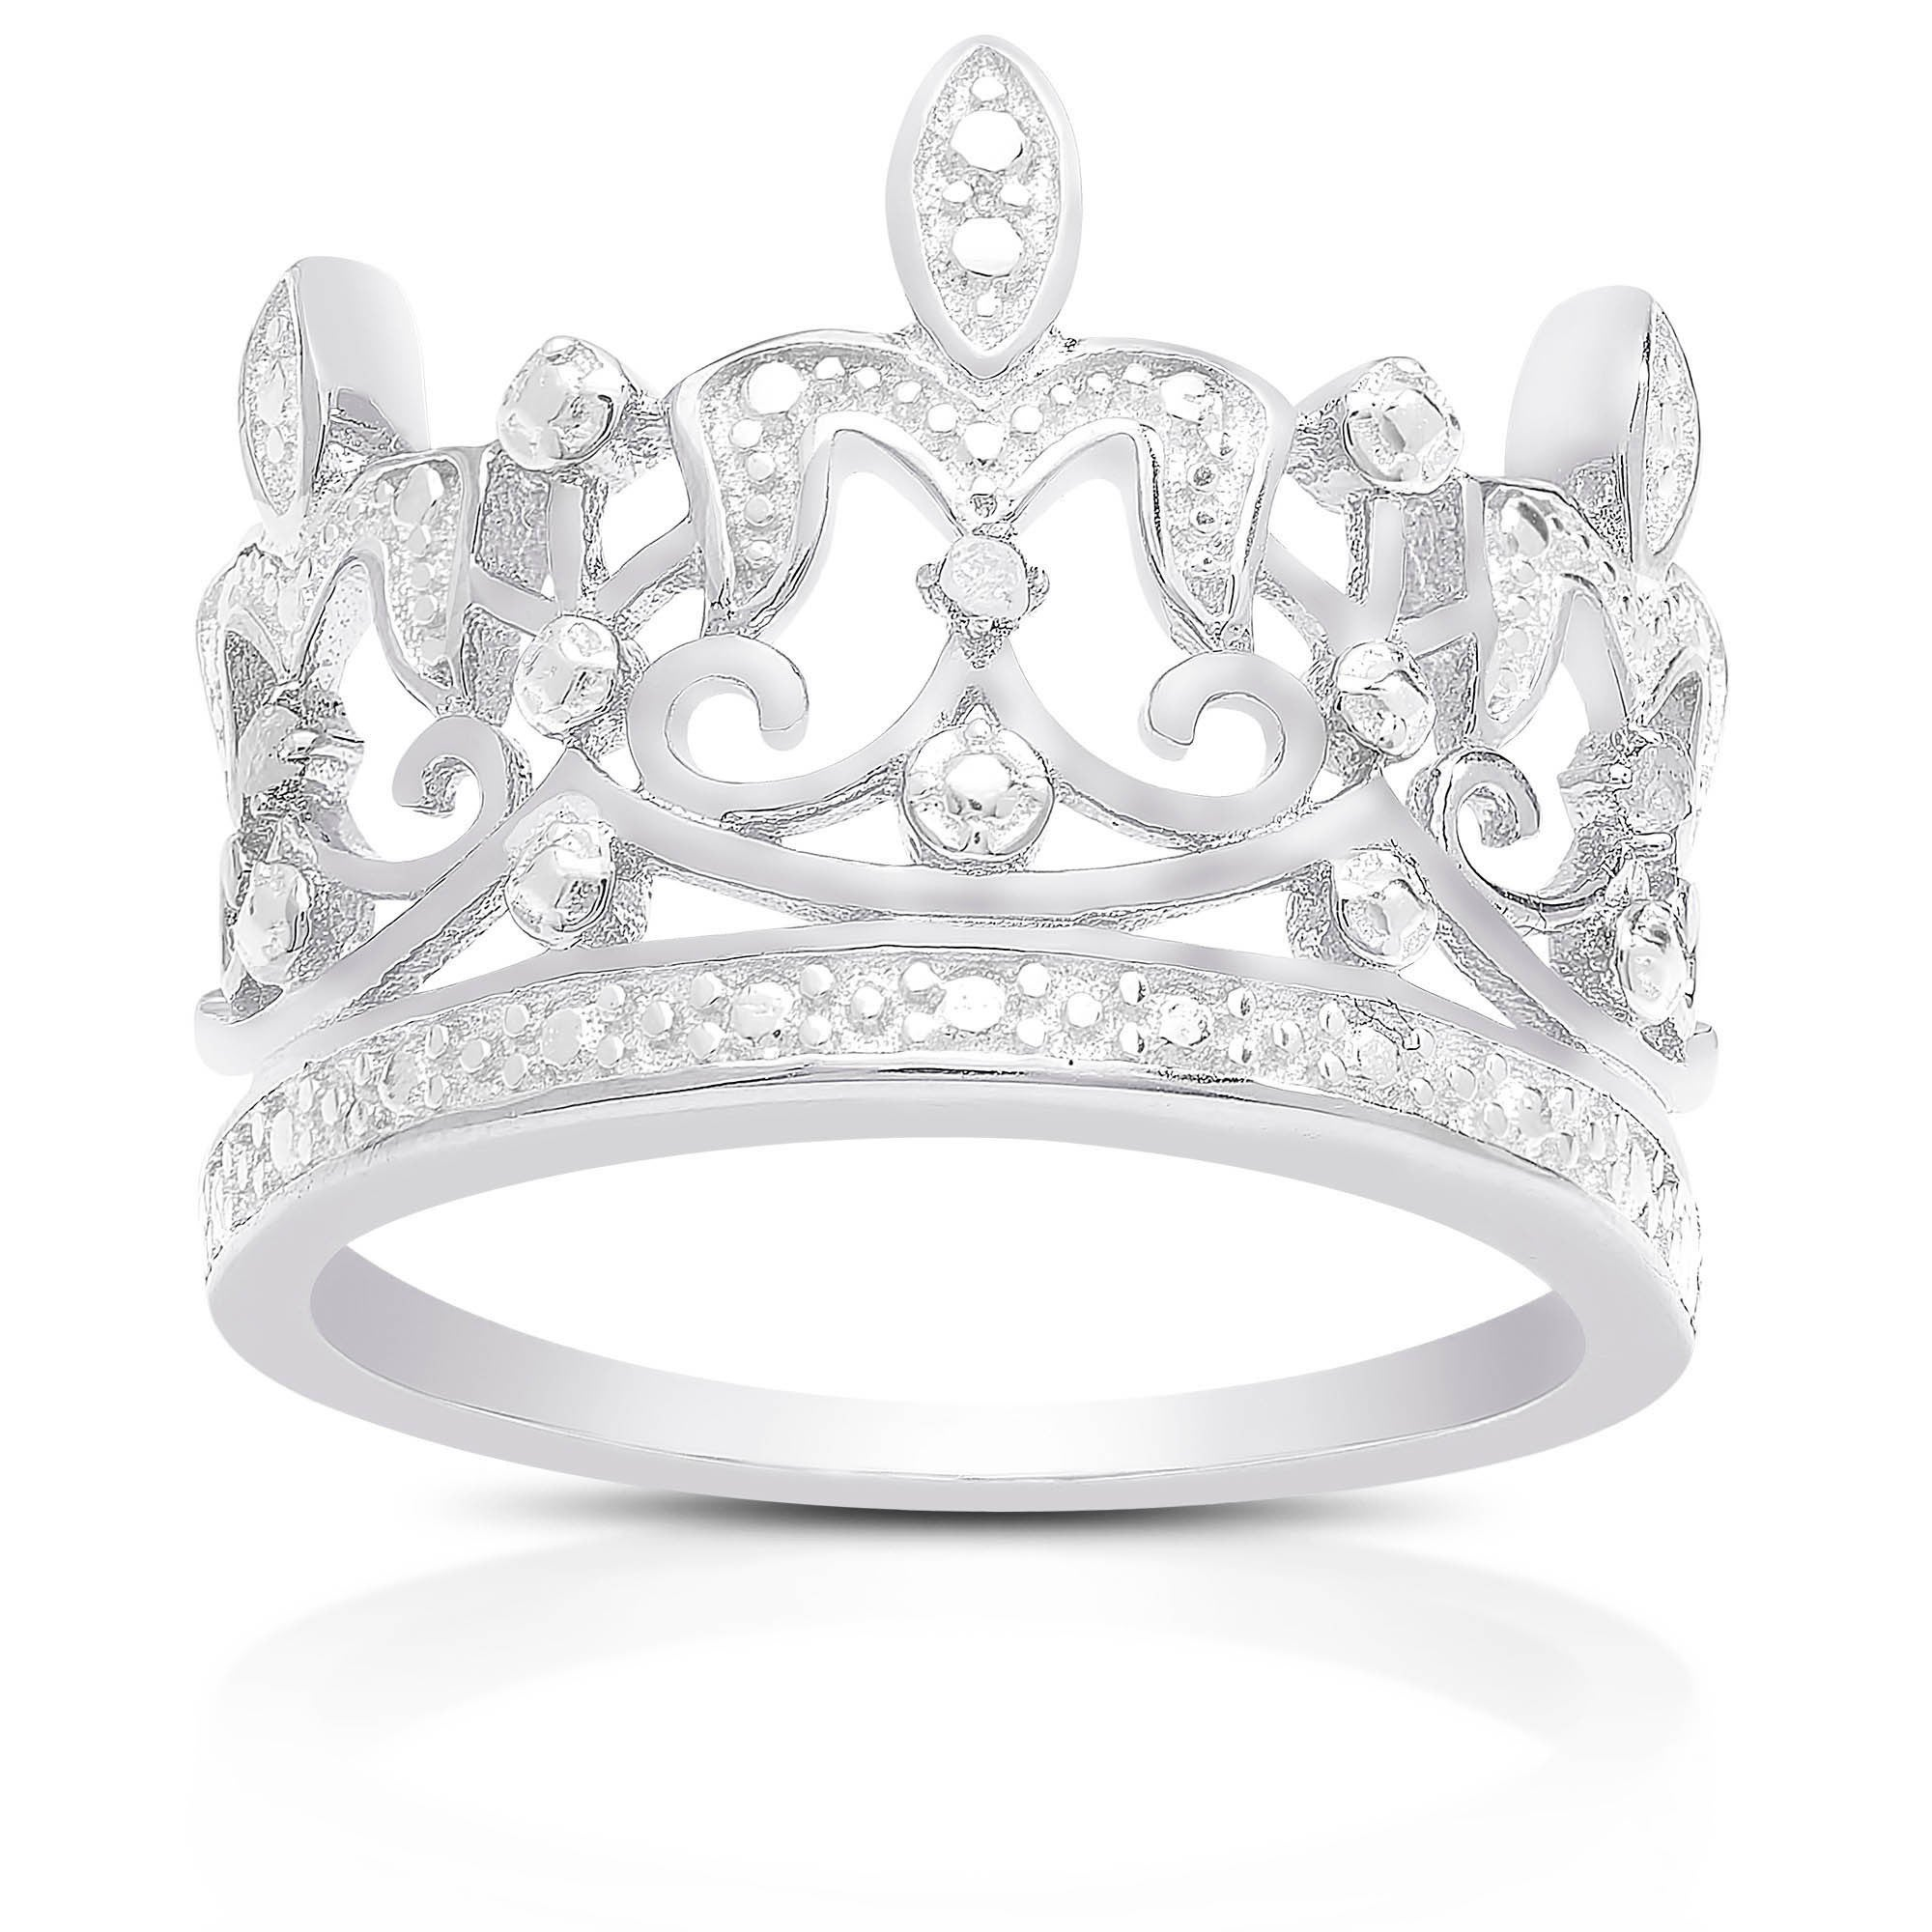 crown moandy res princess queen itm and wedding about for princ king ring black her rings band jewelry details